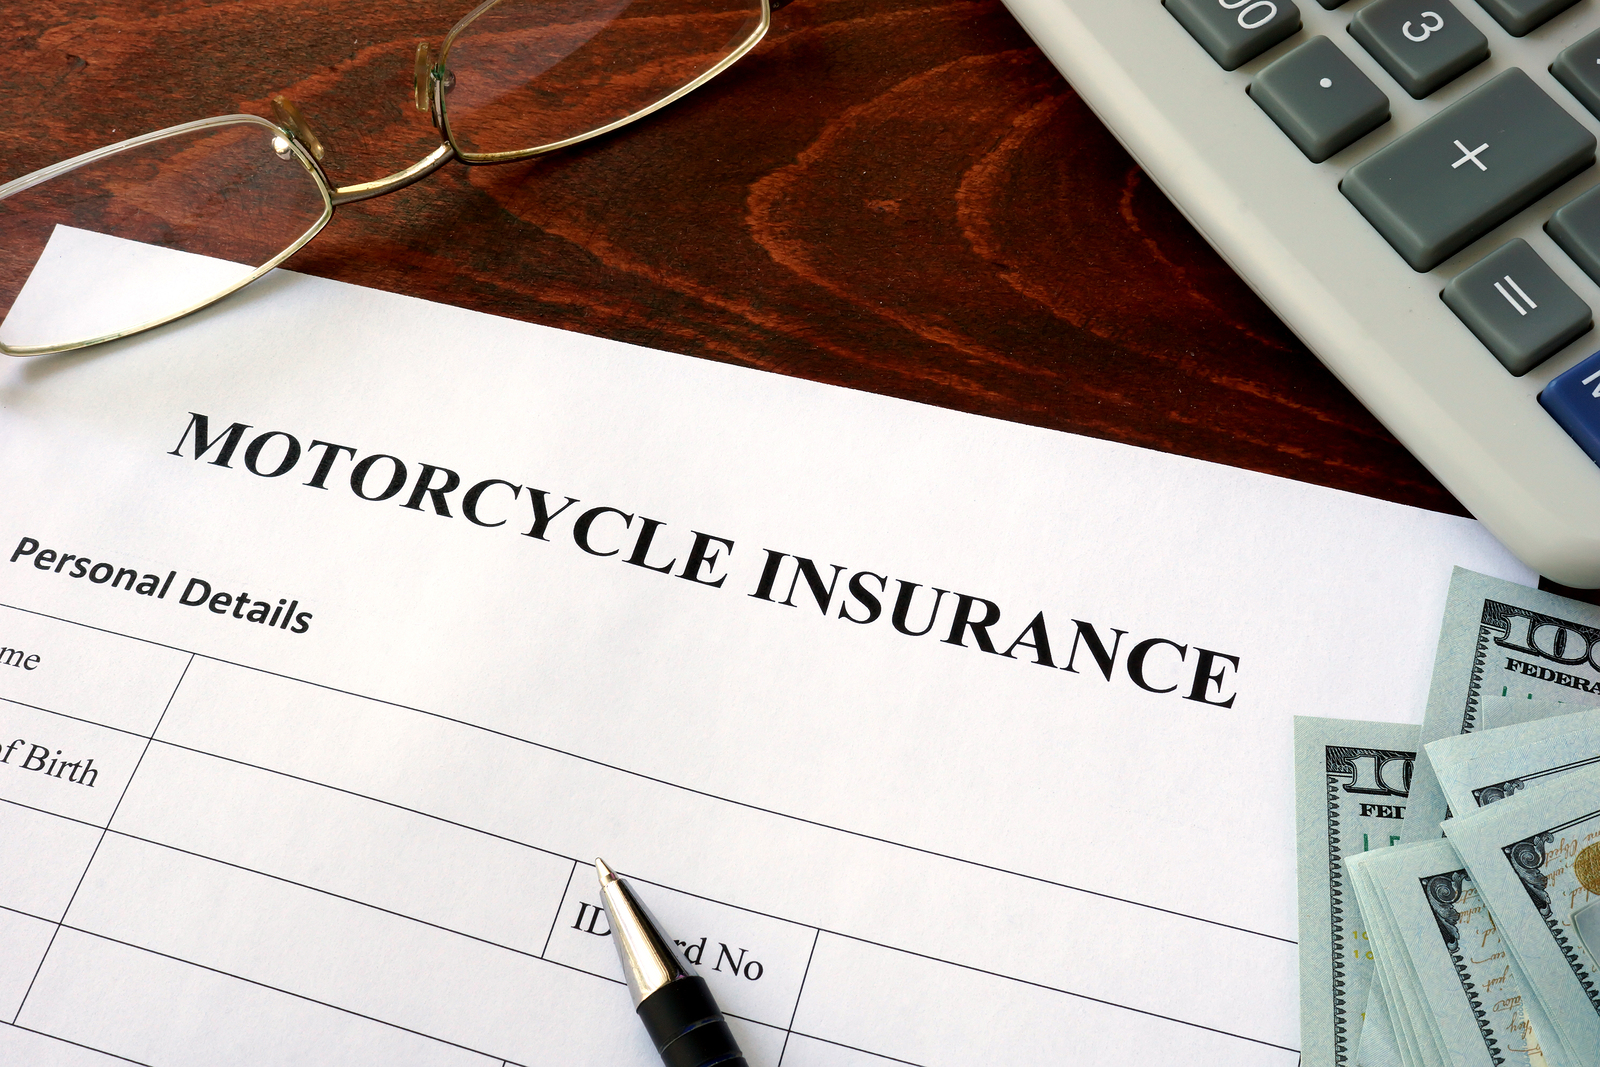 Springville, NY Motorcycle Insurance